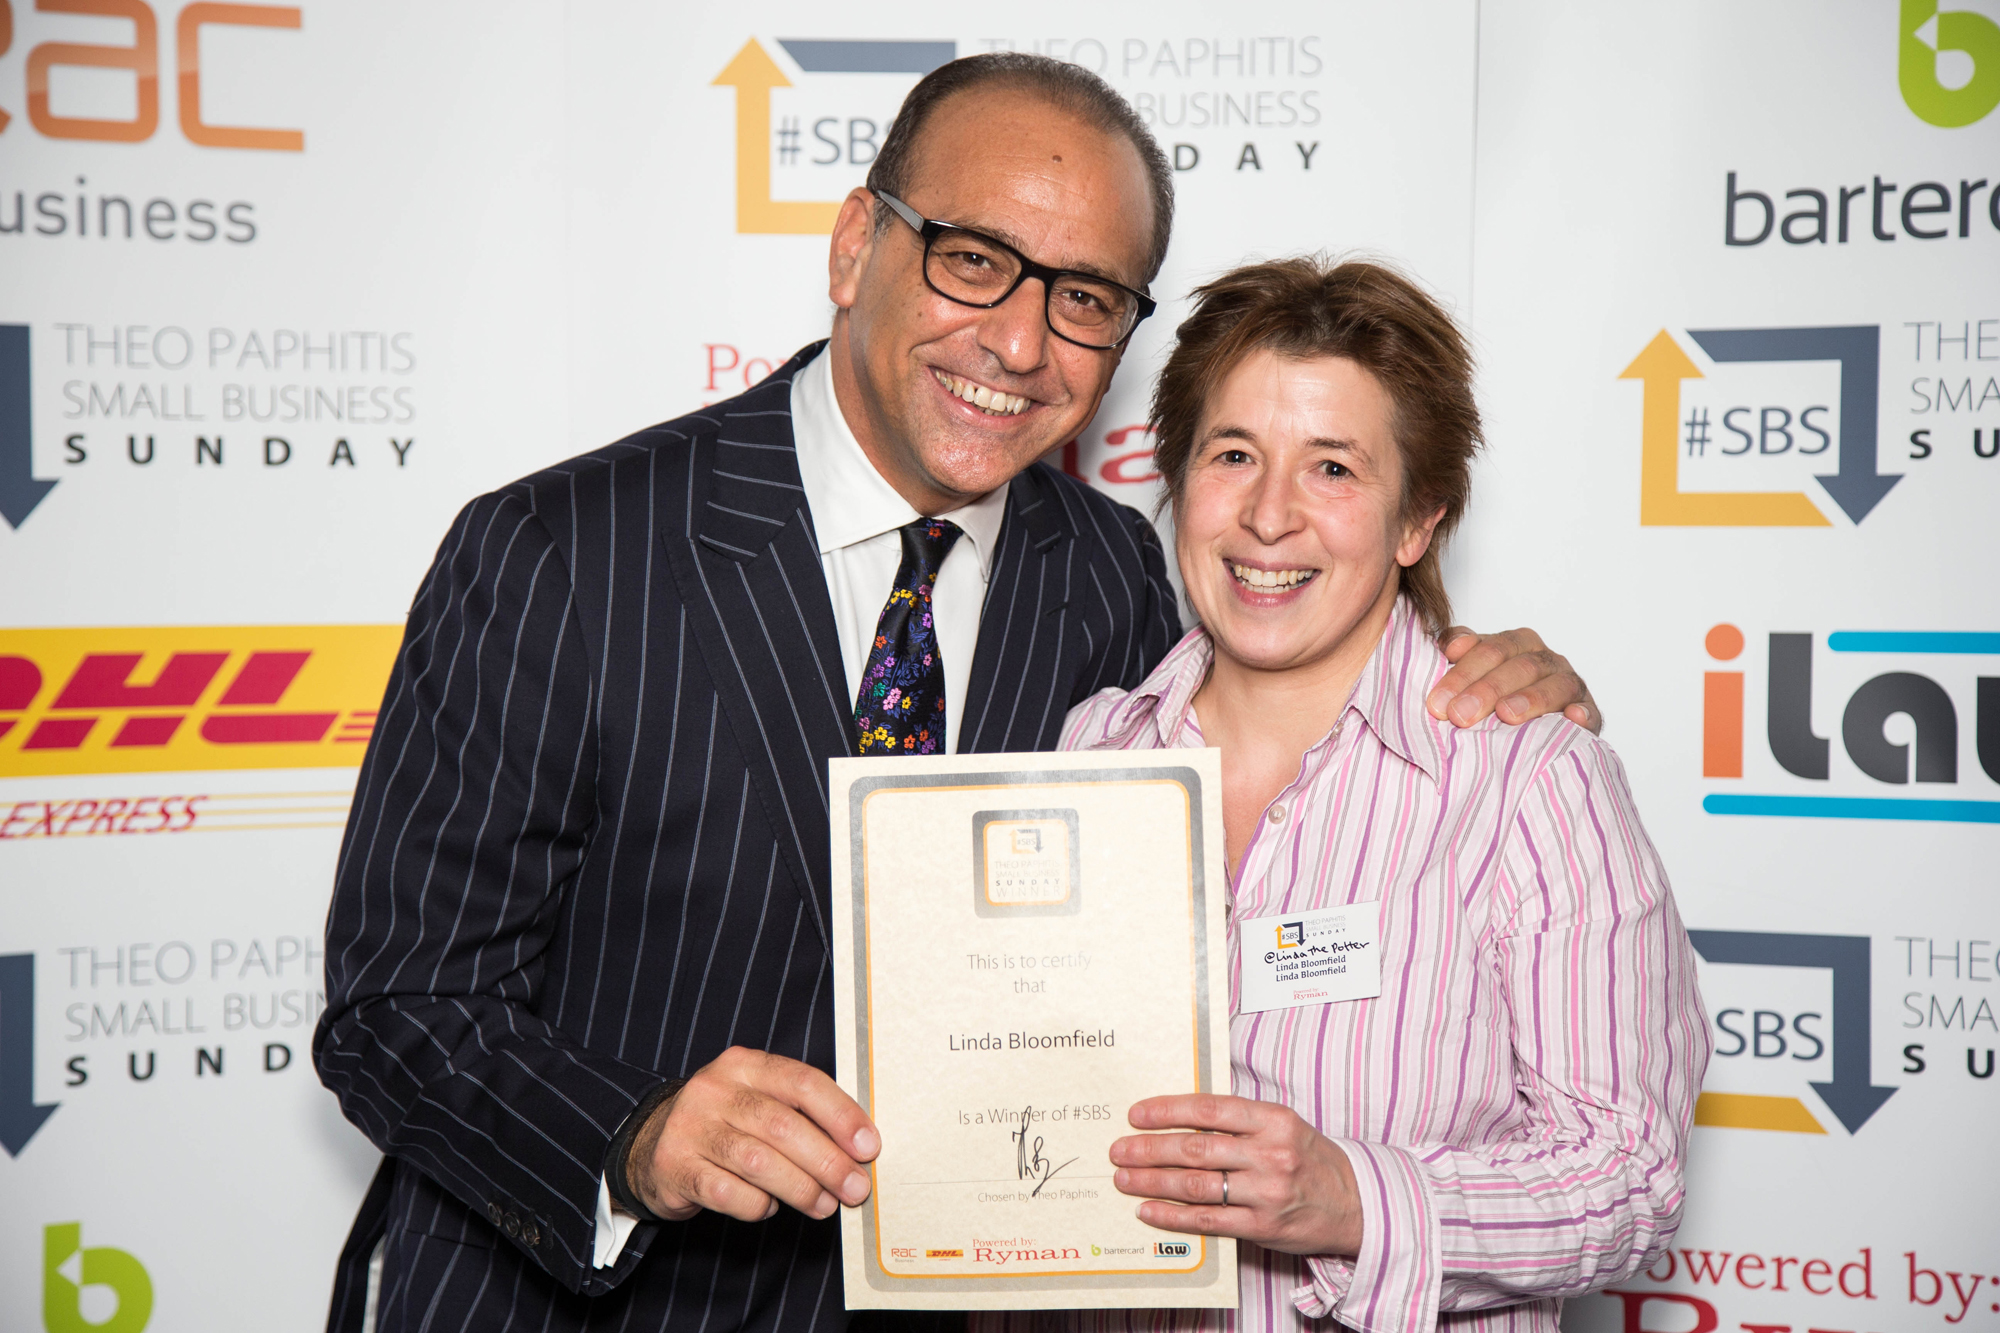 Small Business Sunday #SBS winner